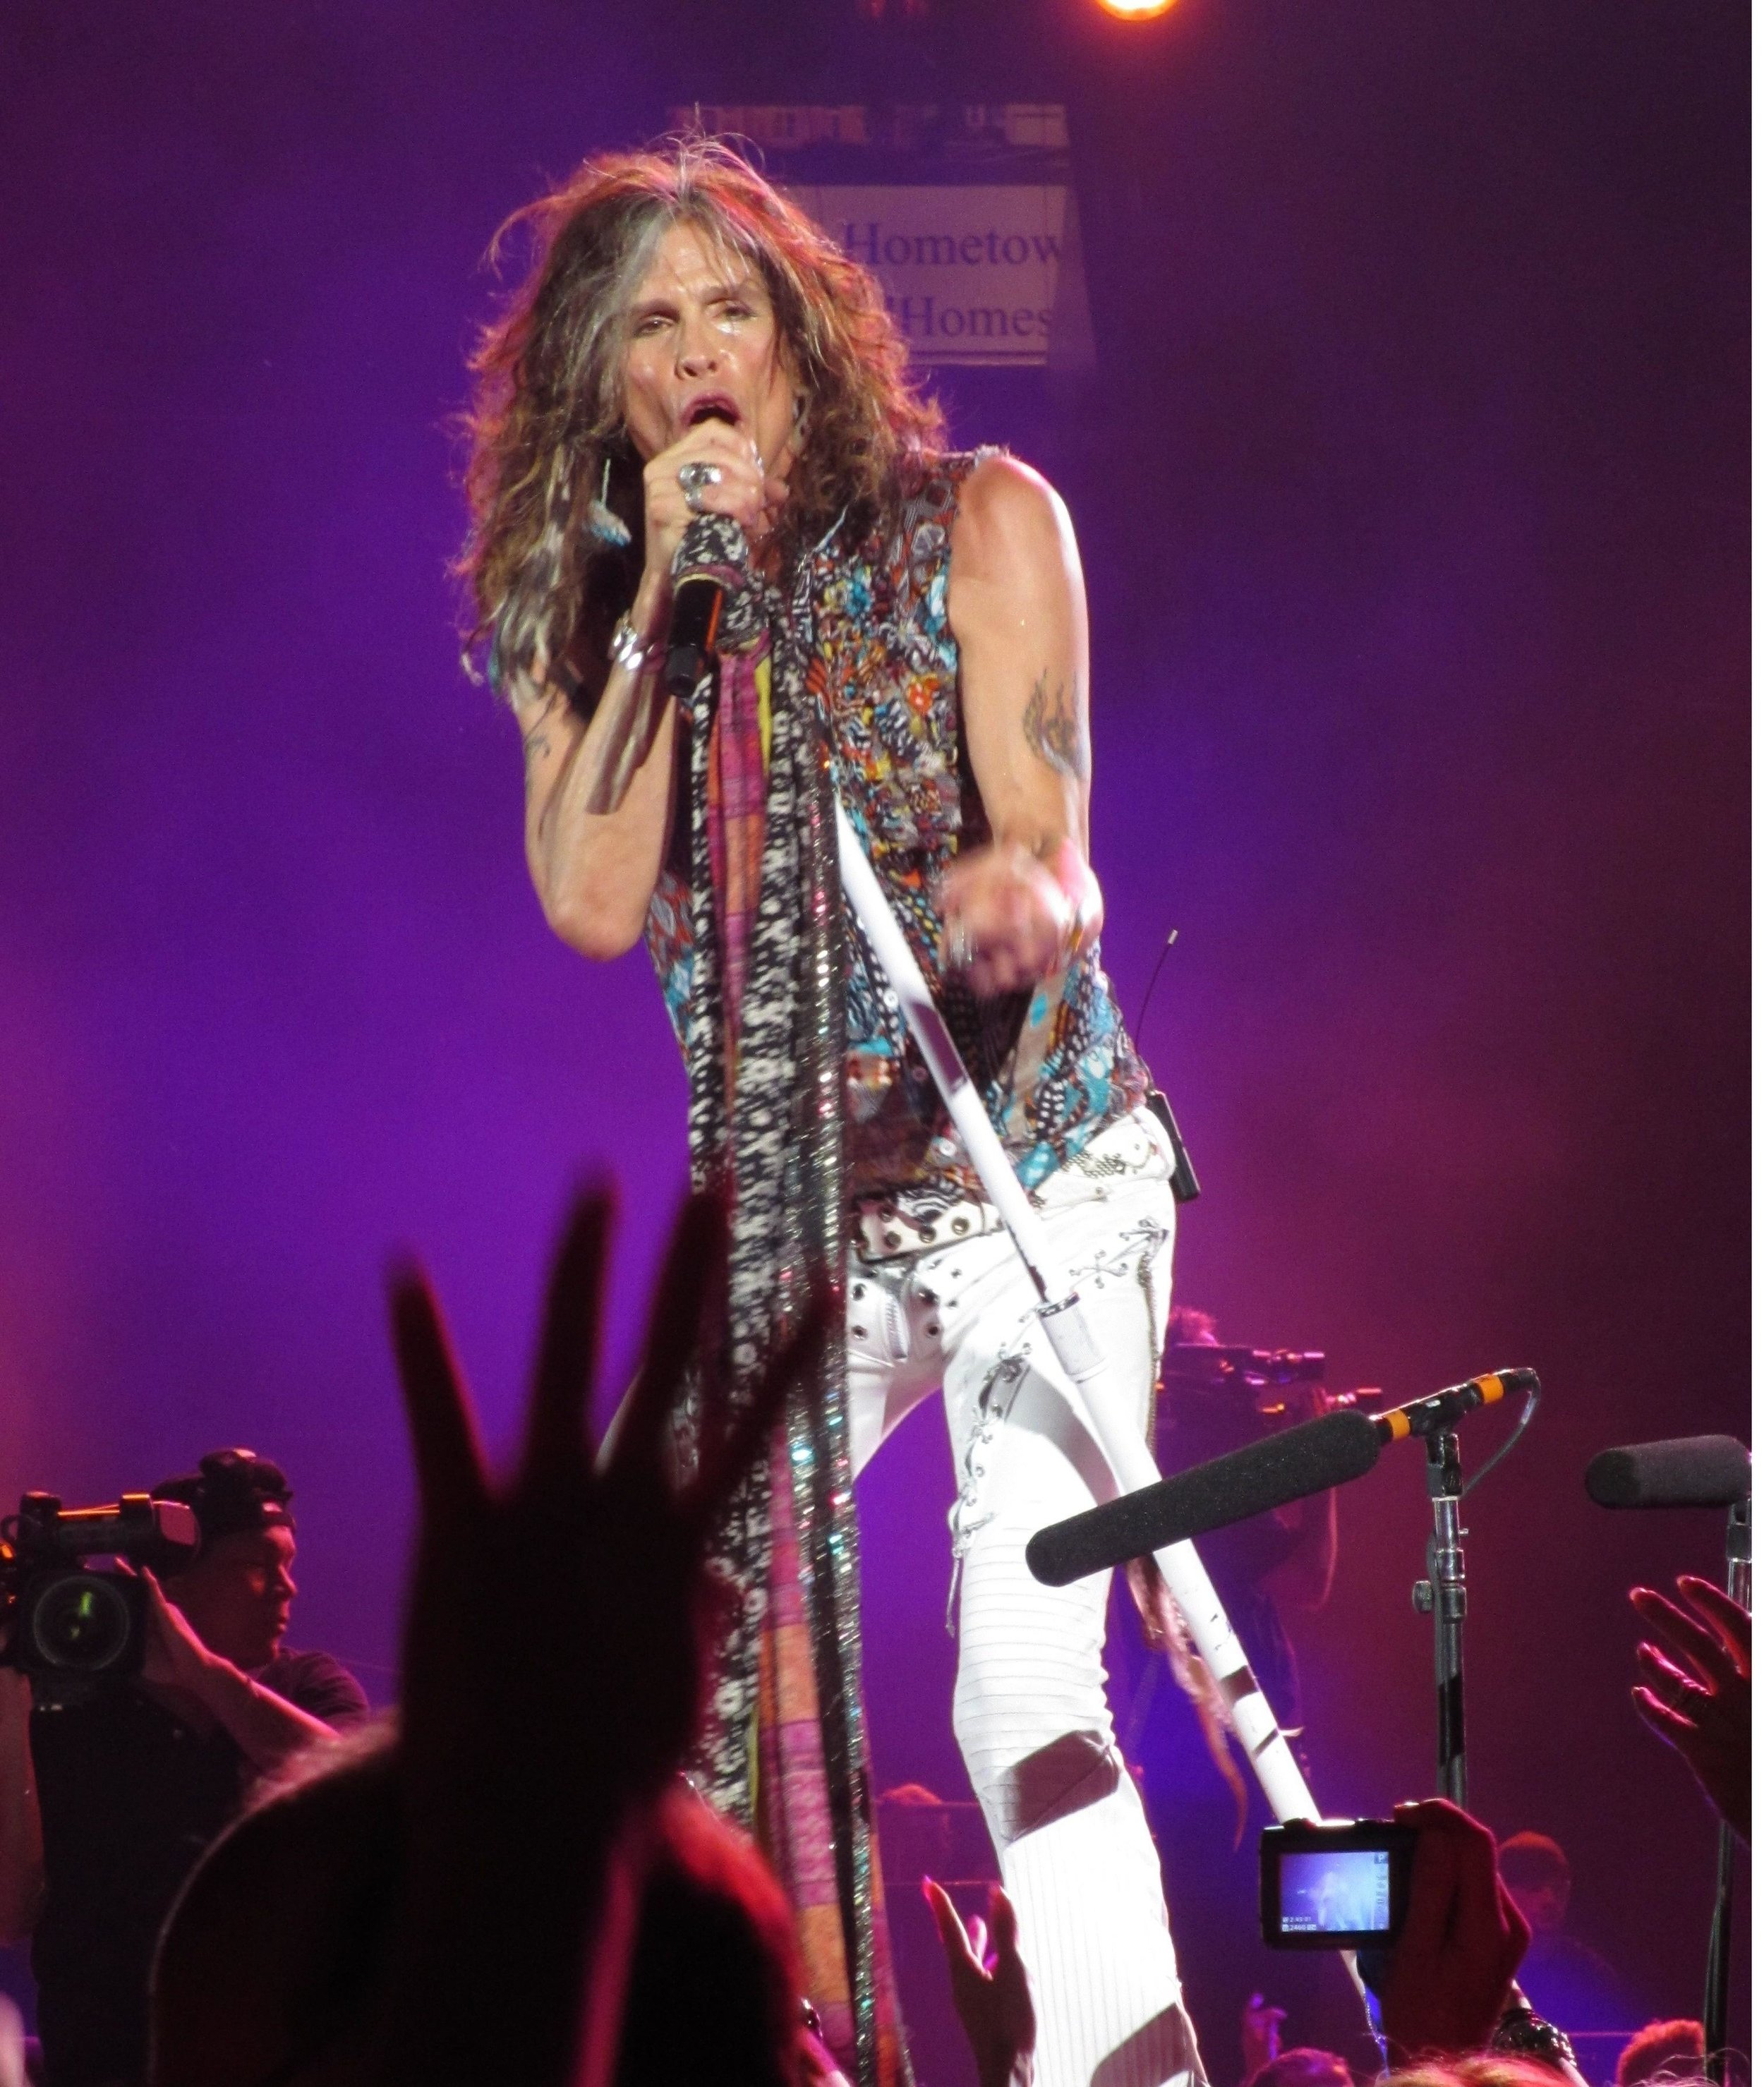 Steven Tyler, lead singer of Aerosmith, from https://upload.wikimedia.org/wikipedia/commons/f/f5/TylerNassauColliseum.jpg